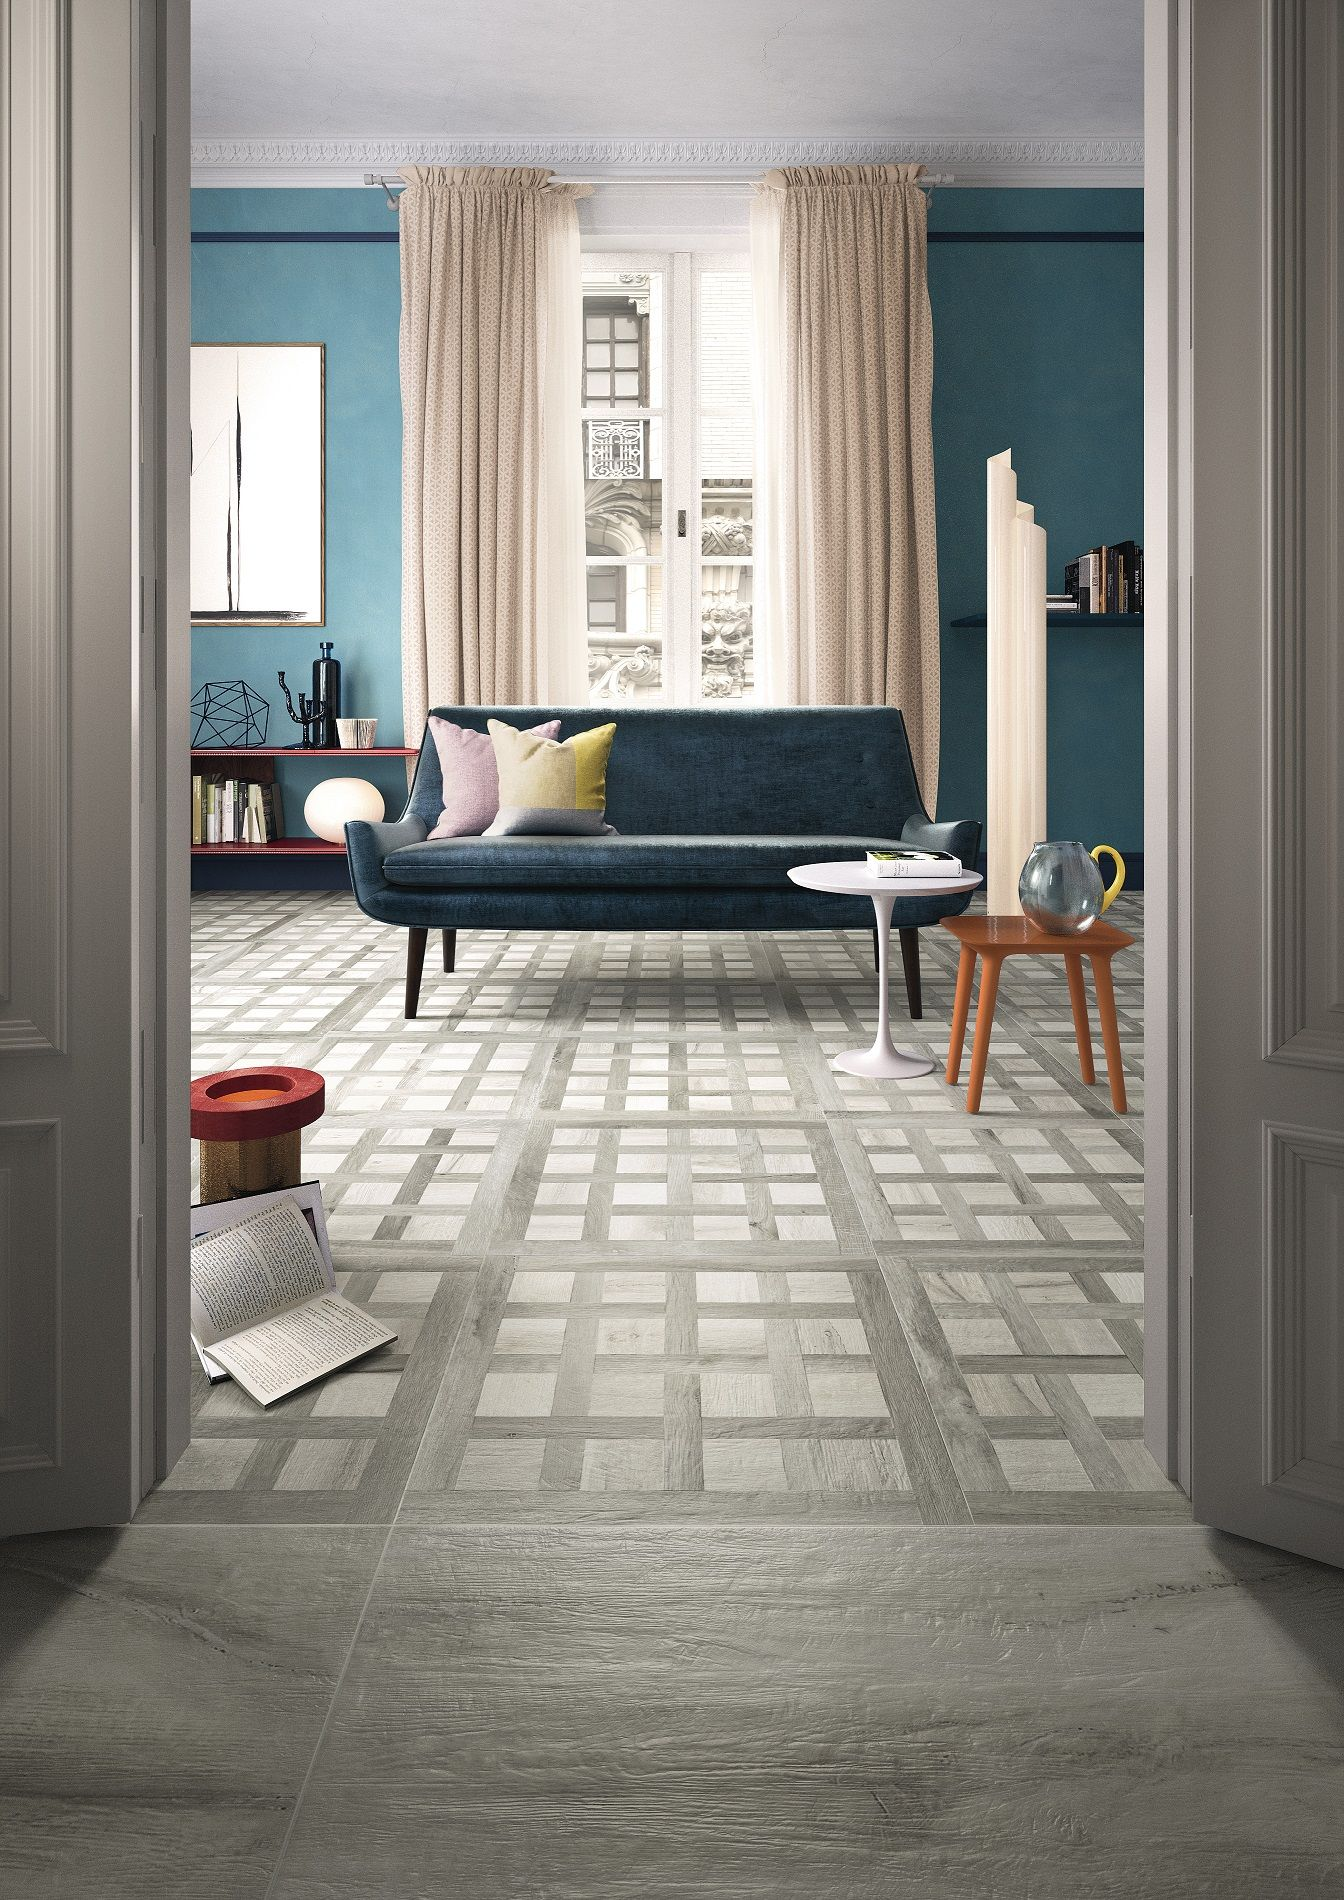 Kuni Intarsi WG white wood effect glazed porcelain floor